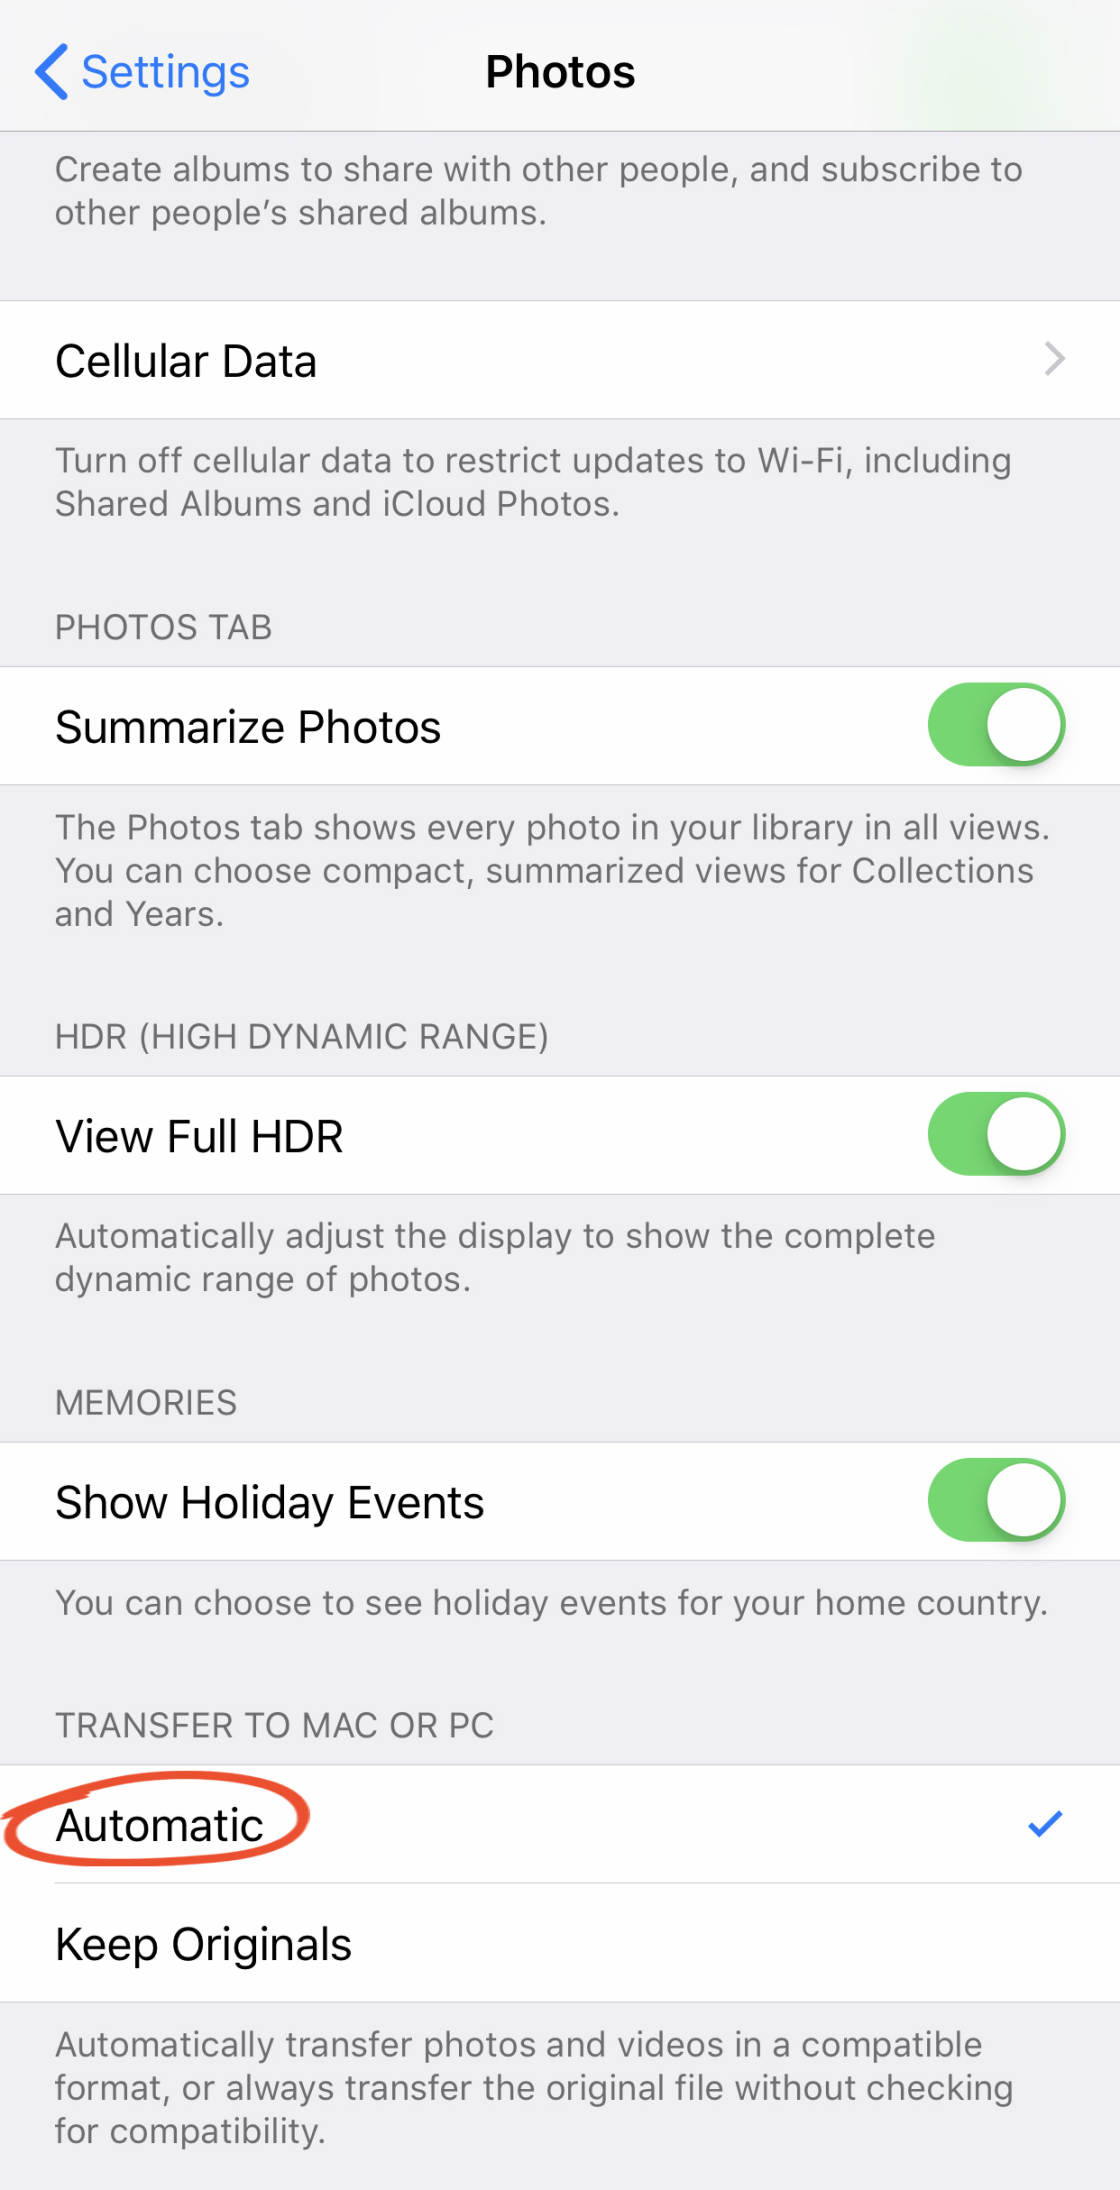 How To Transfer Photos From iPhone To PC no script